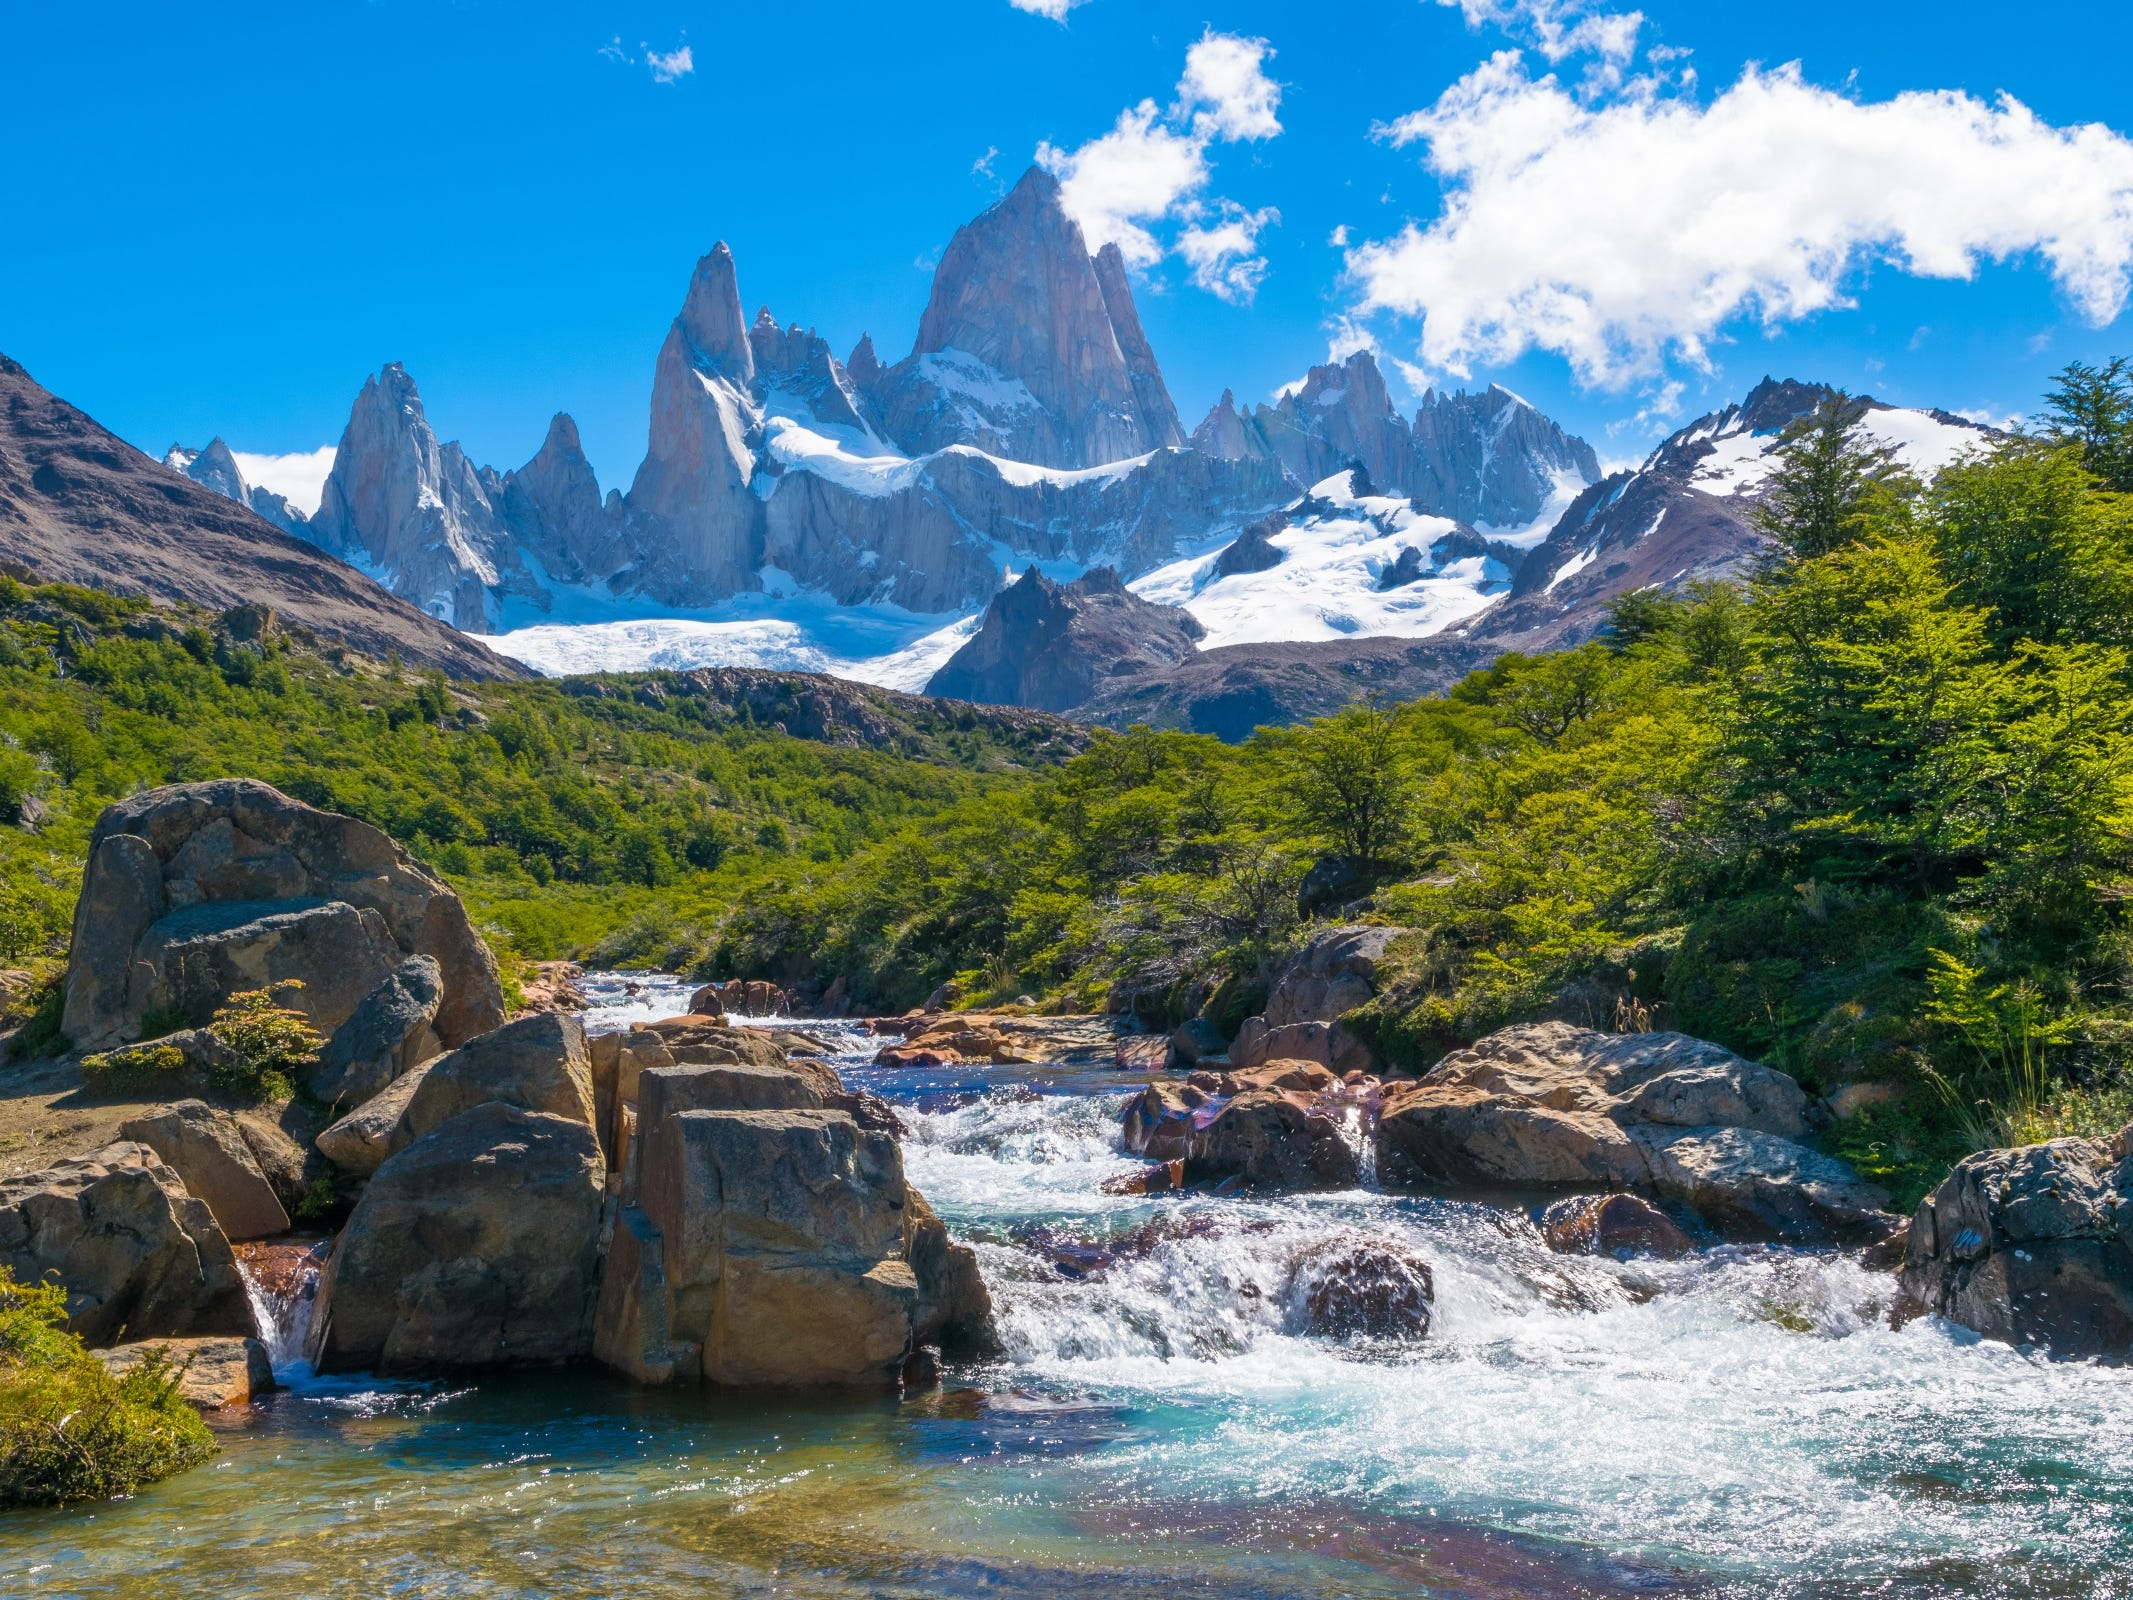 No. 6 on the list of best value places to visit in 2019 is Argentina.